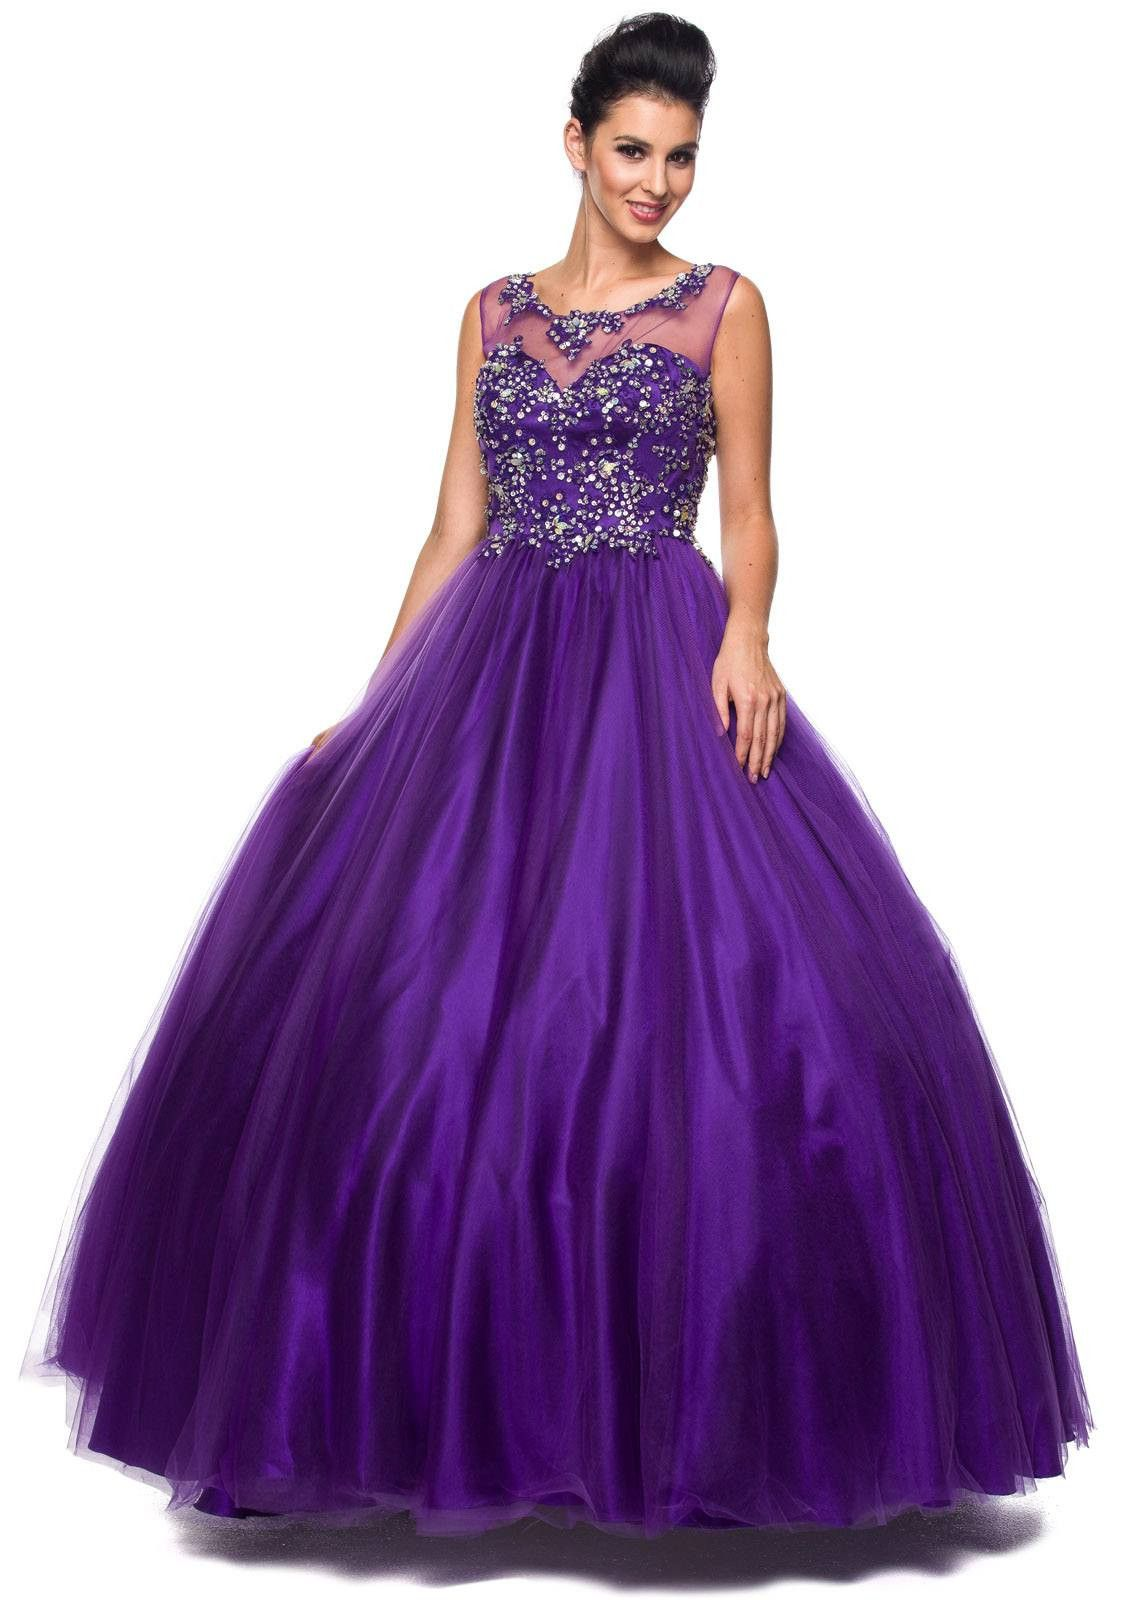 Jewel neckline mesh yoke long purple engagement gown engagement